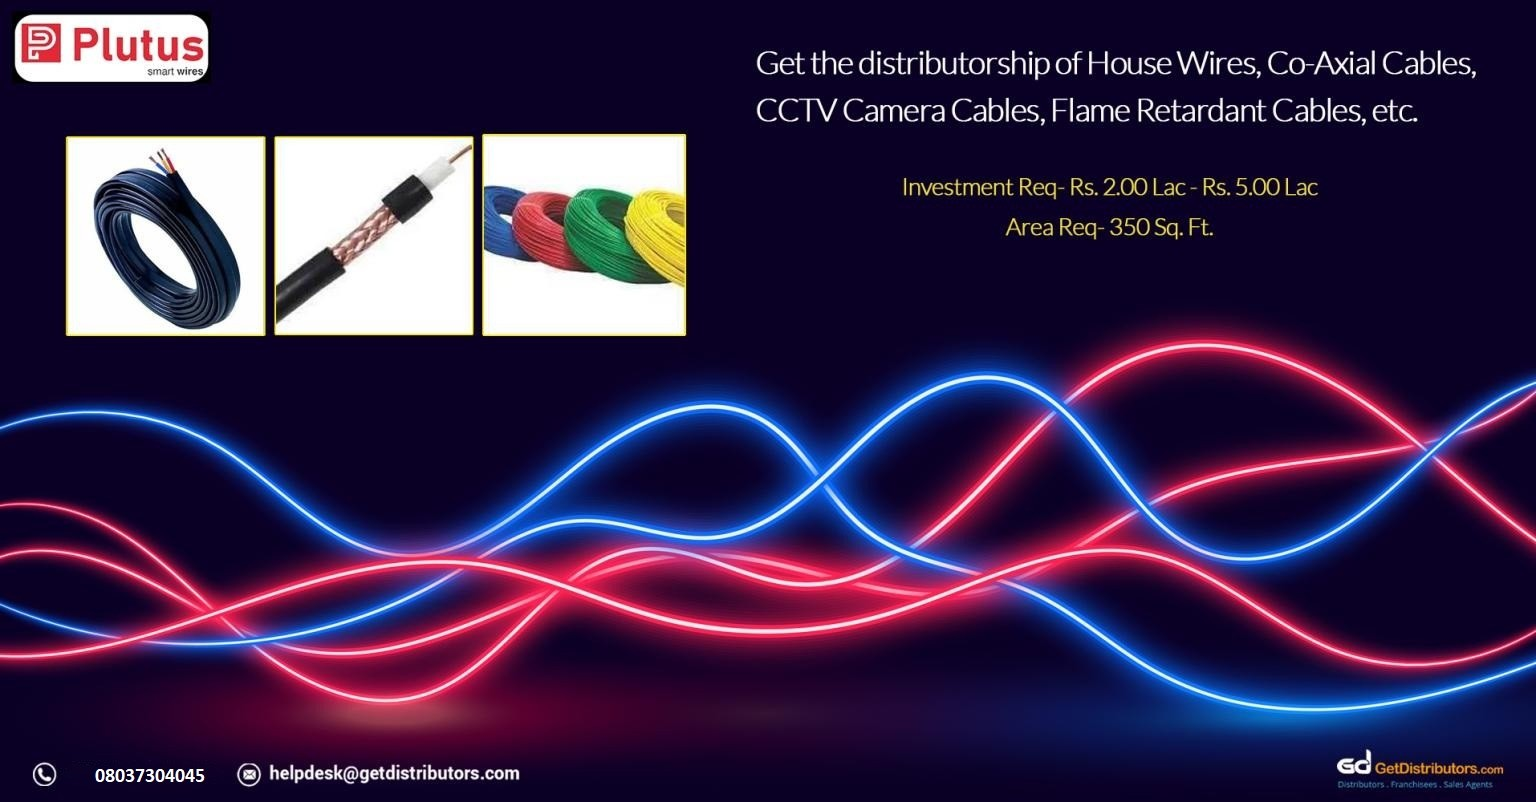 An Opportunity To Distribute Top Grade Cables And Wires